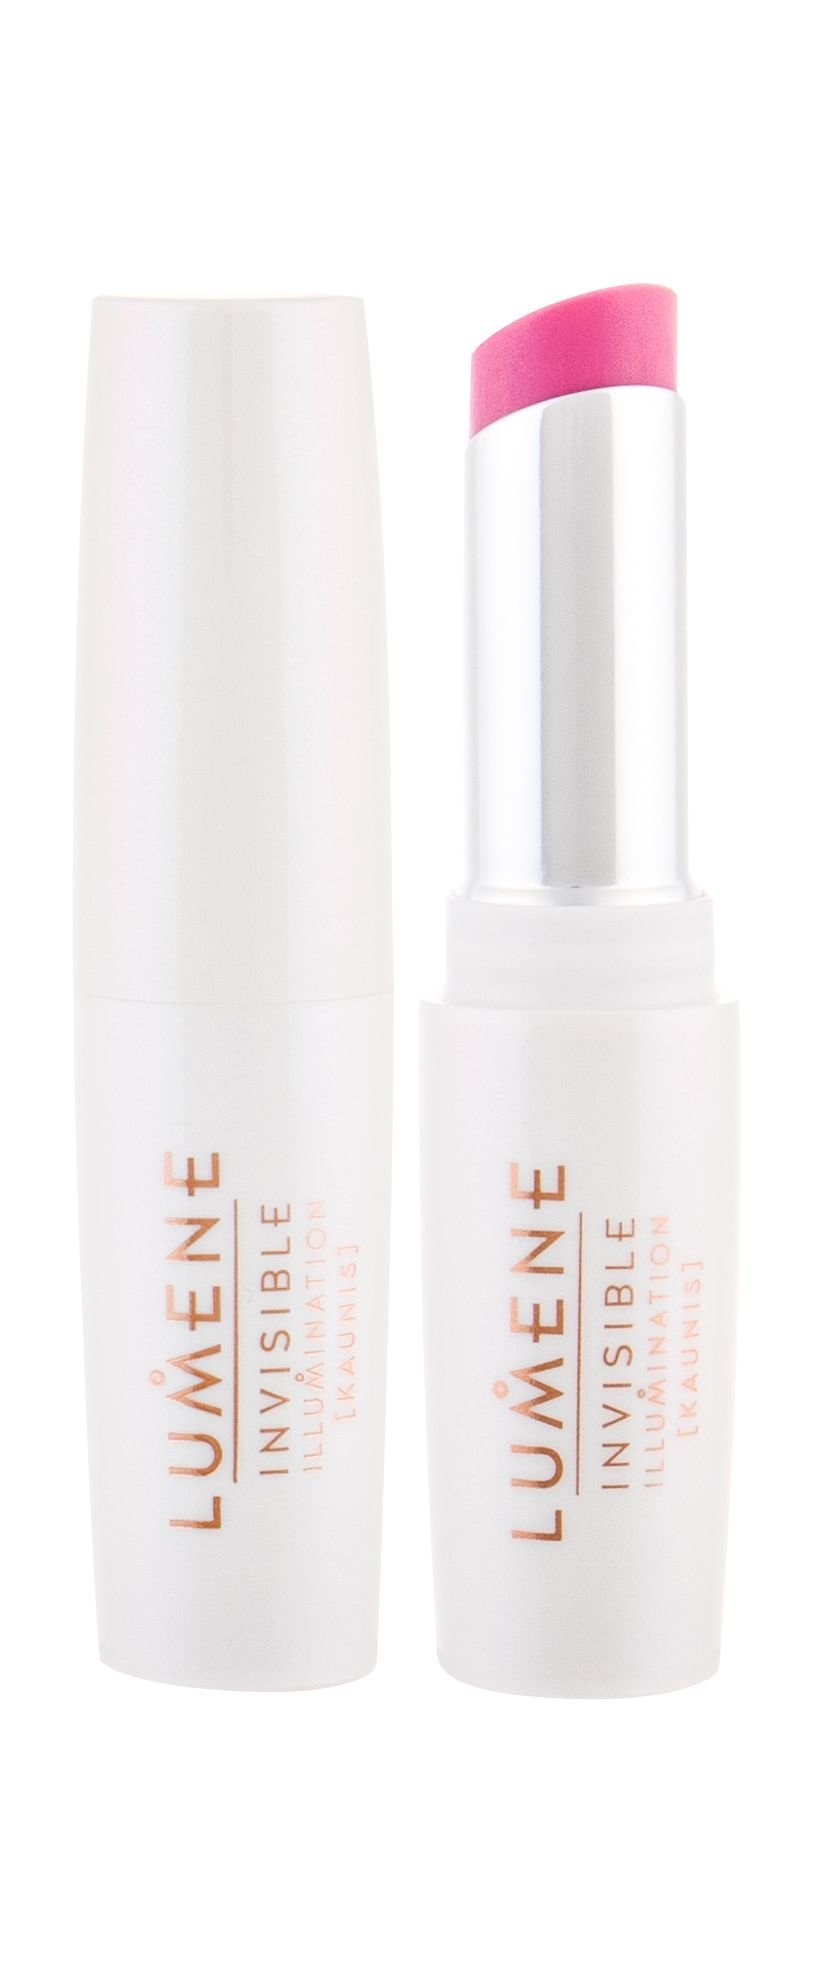 Lumene Invisible Illumination Lip Balm 2ml Heather